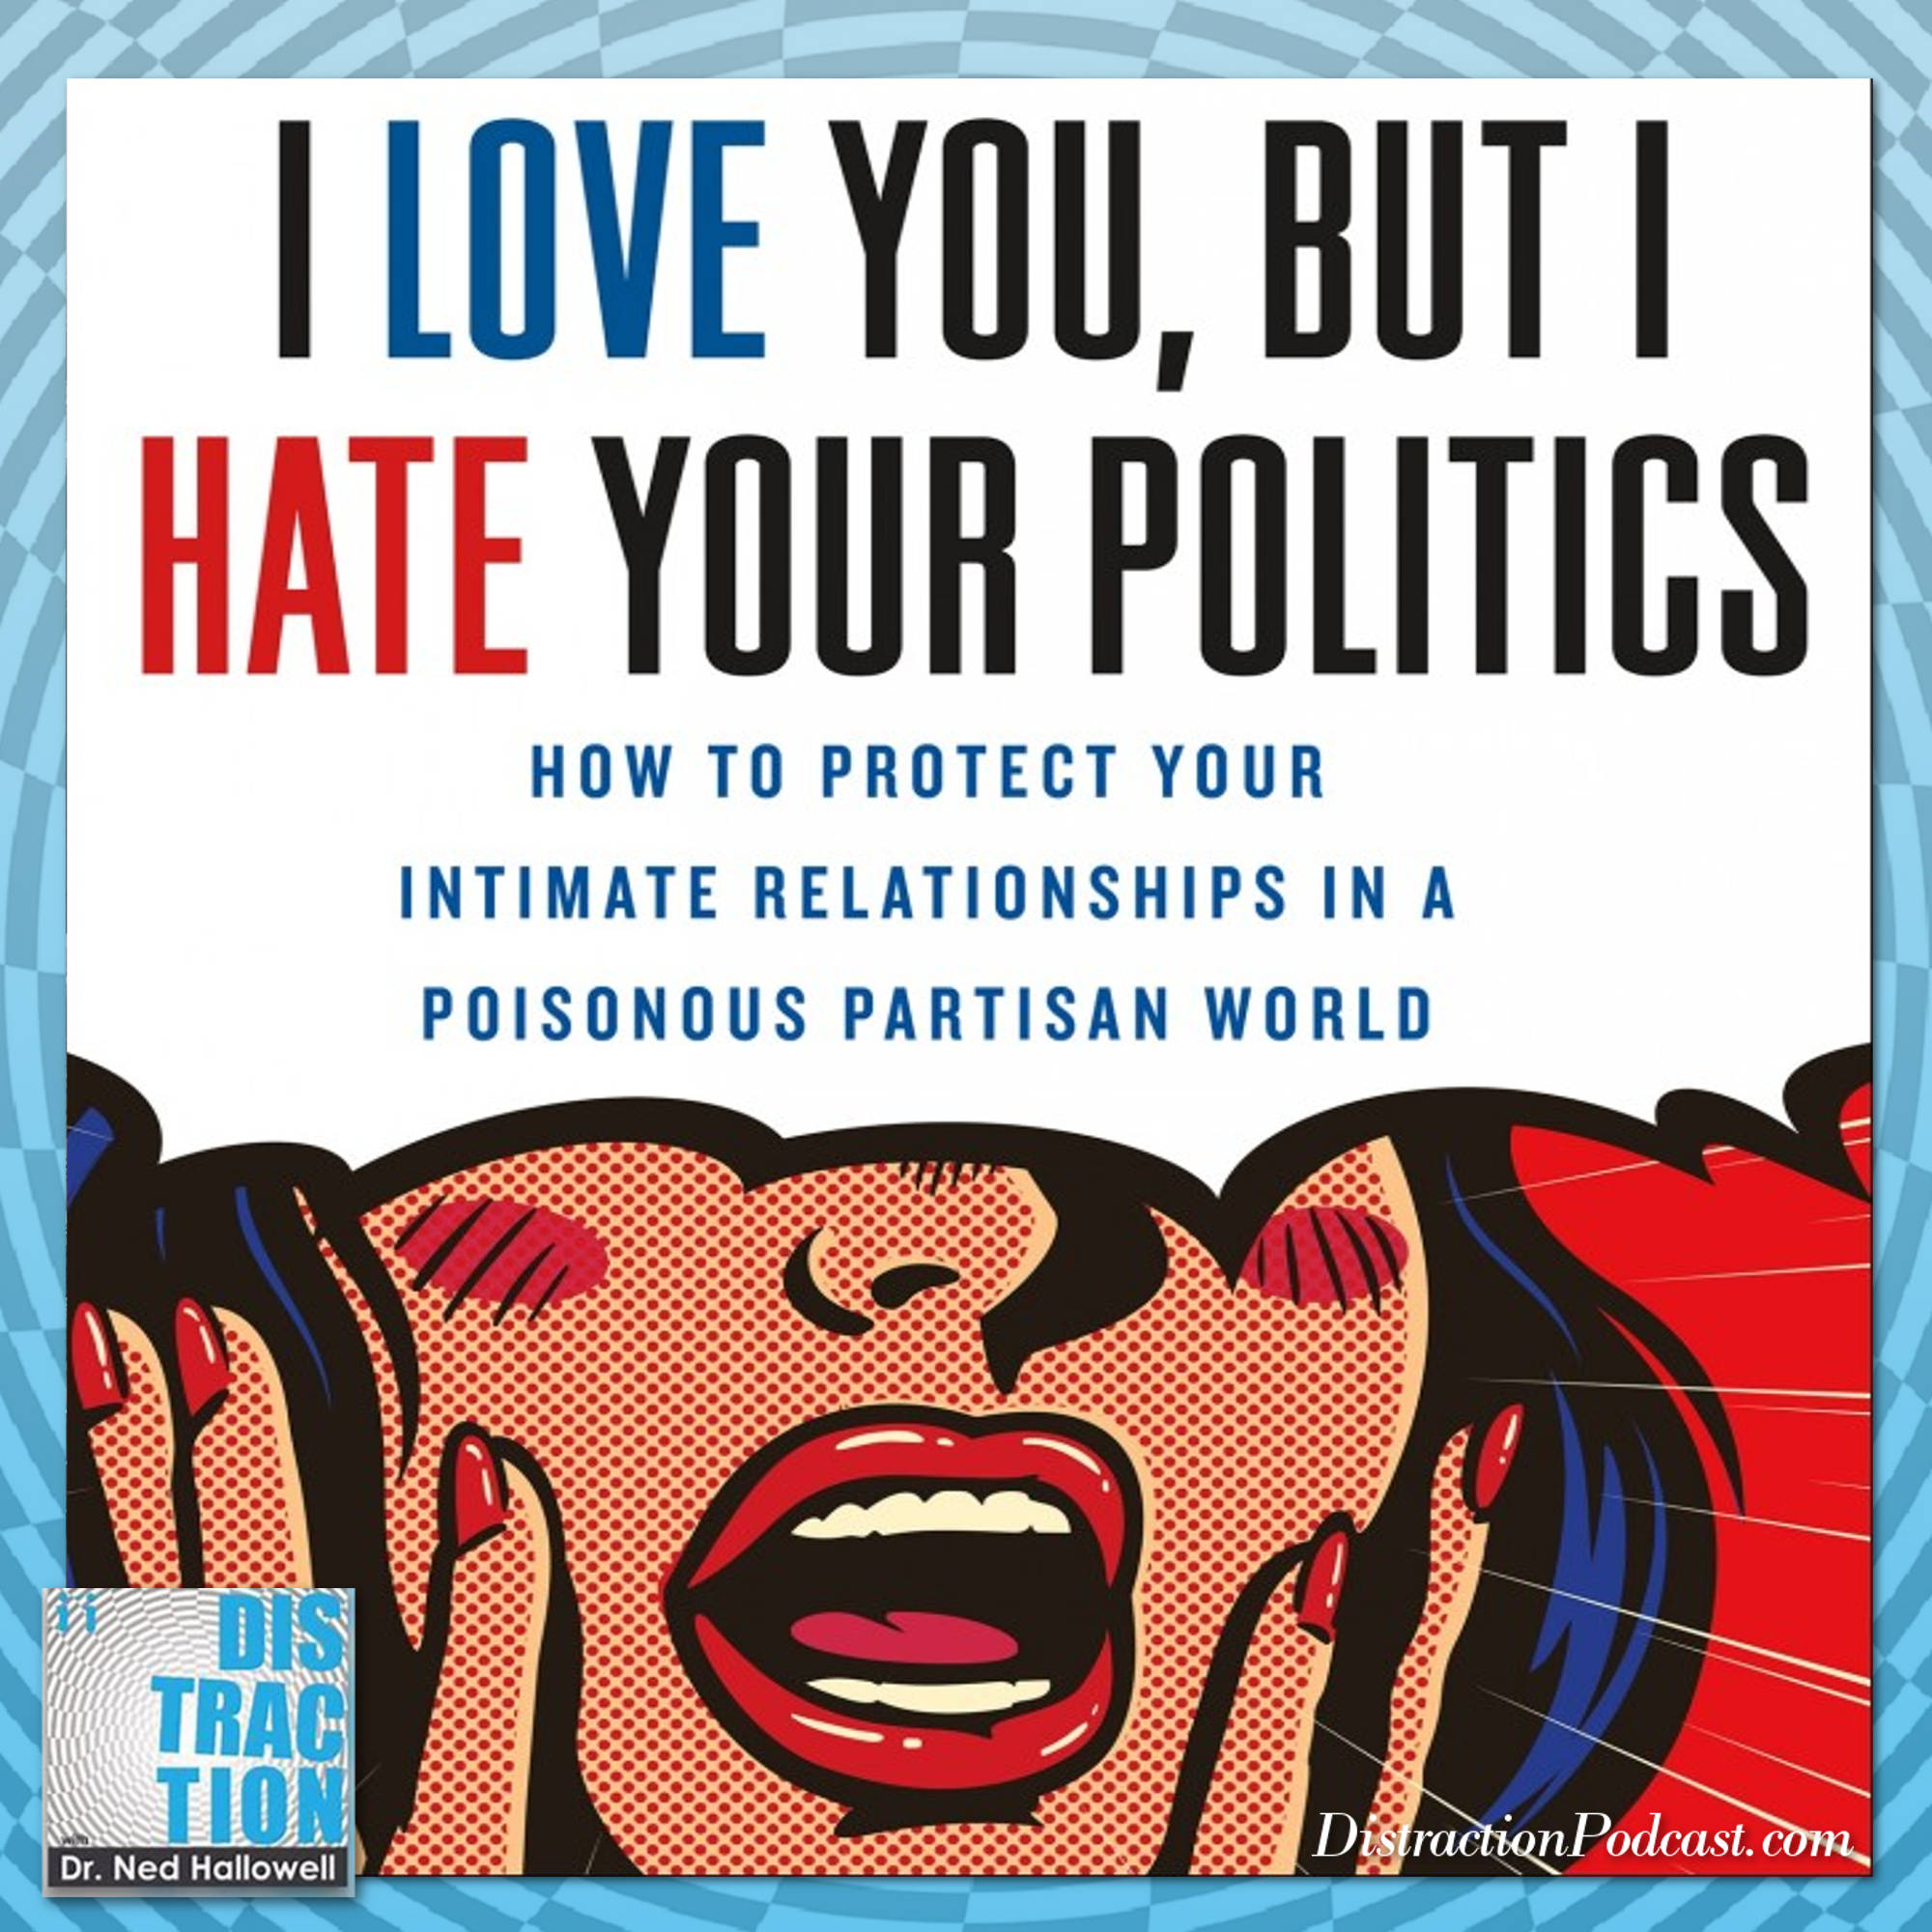 Protecting Your Intimate Relationships in a Poisonous Partisan World